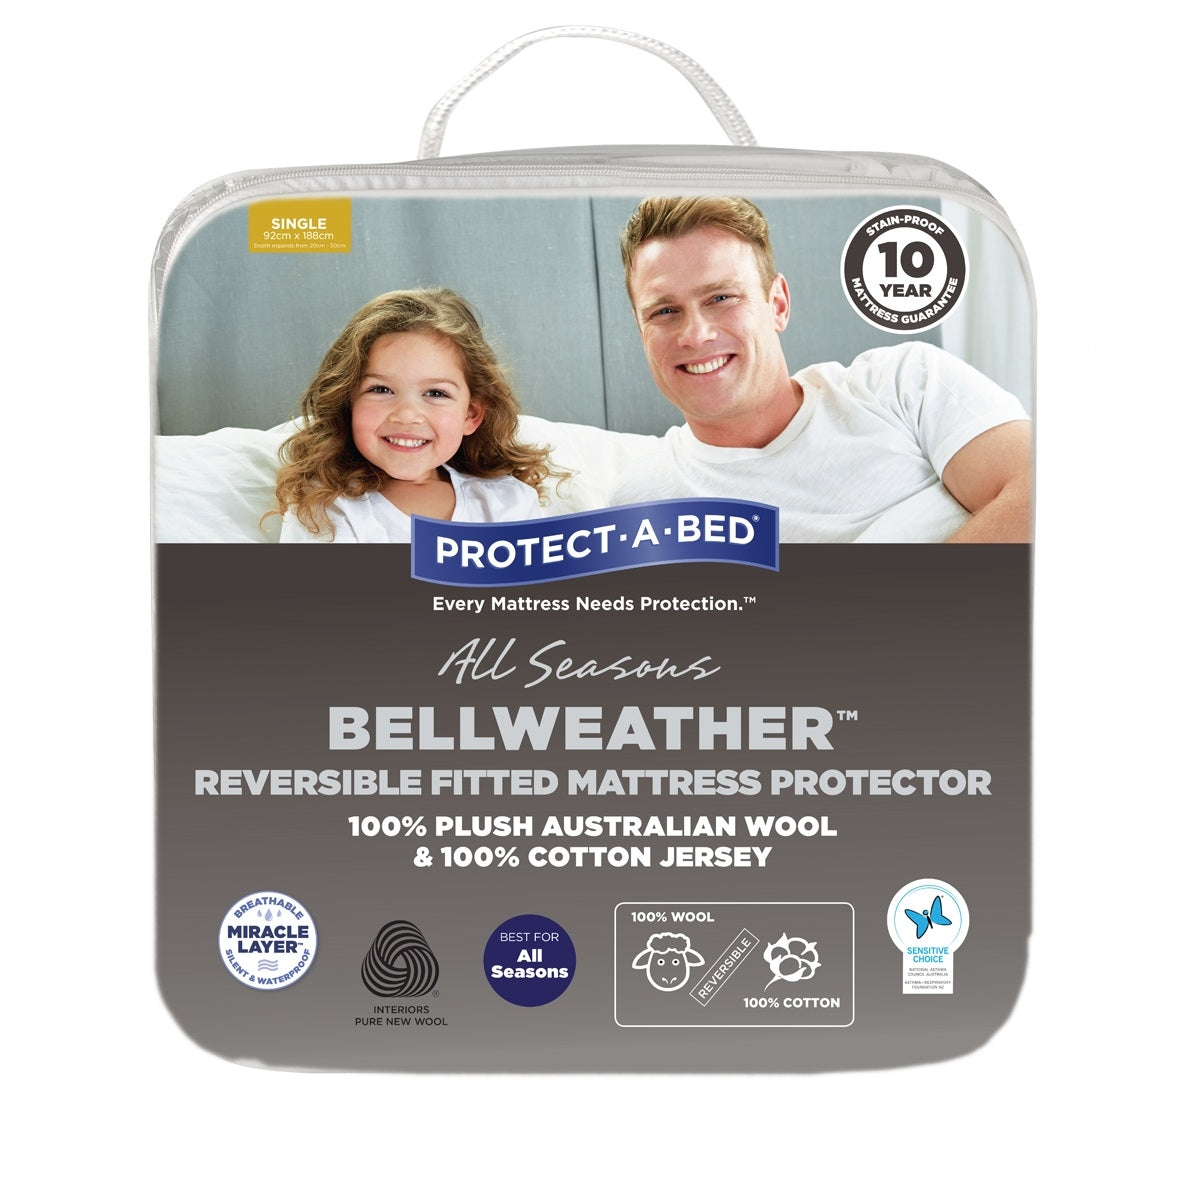 Protect-a-Bed Bellweather Mattress Protector